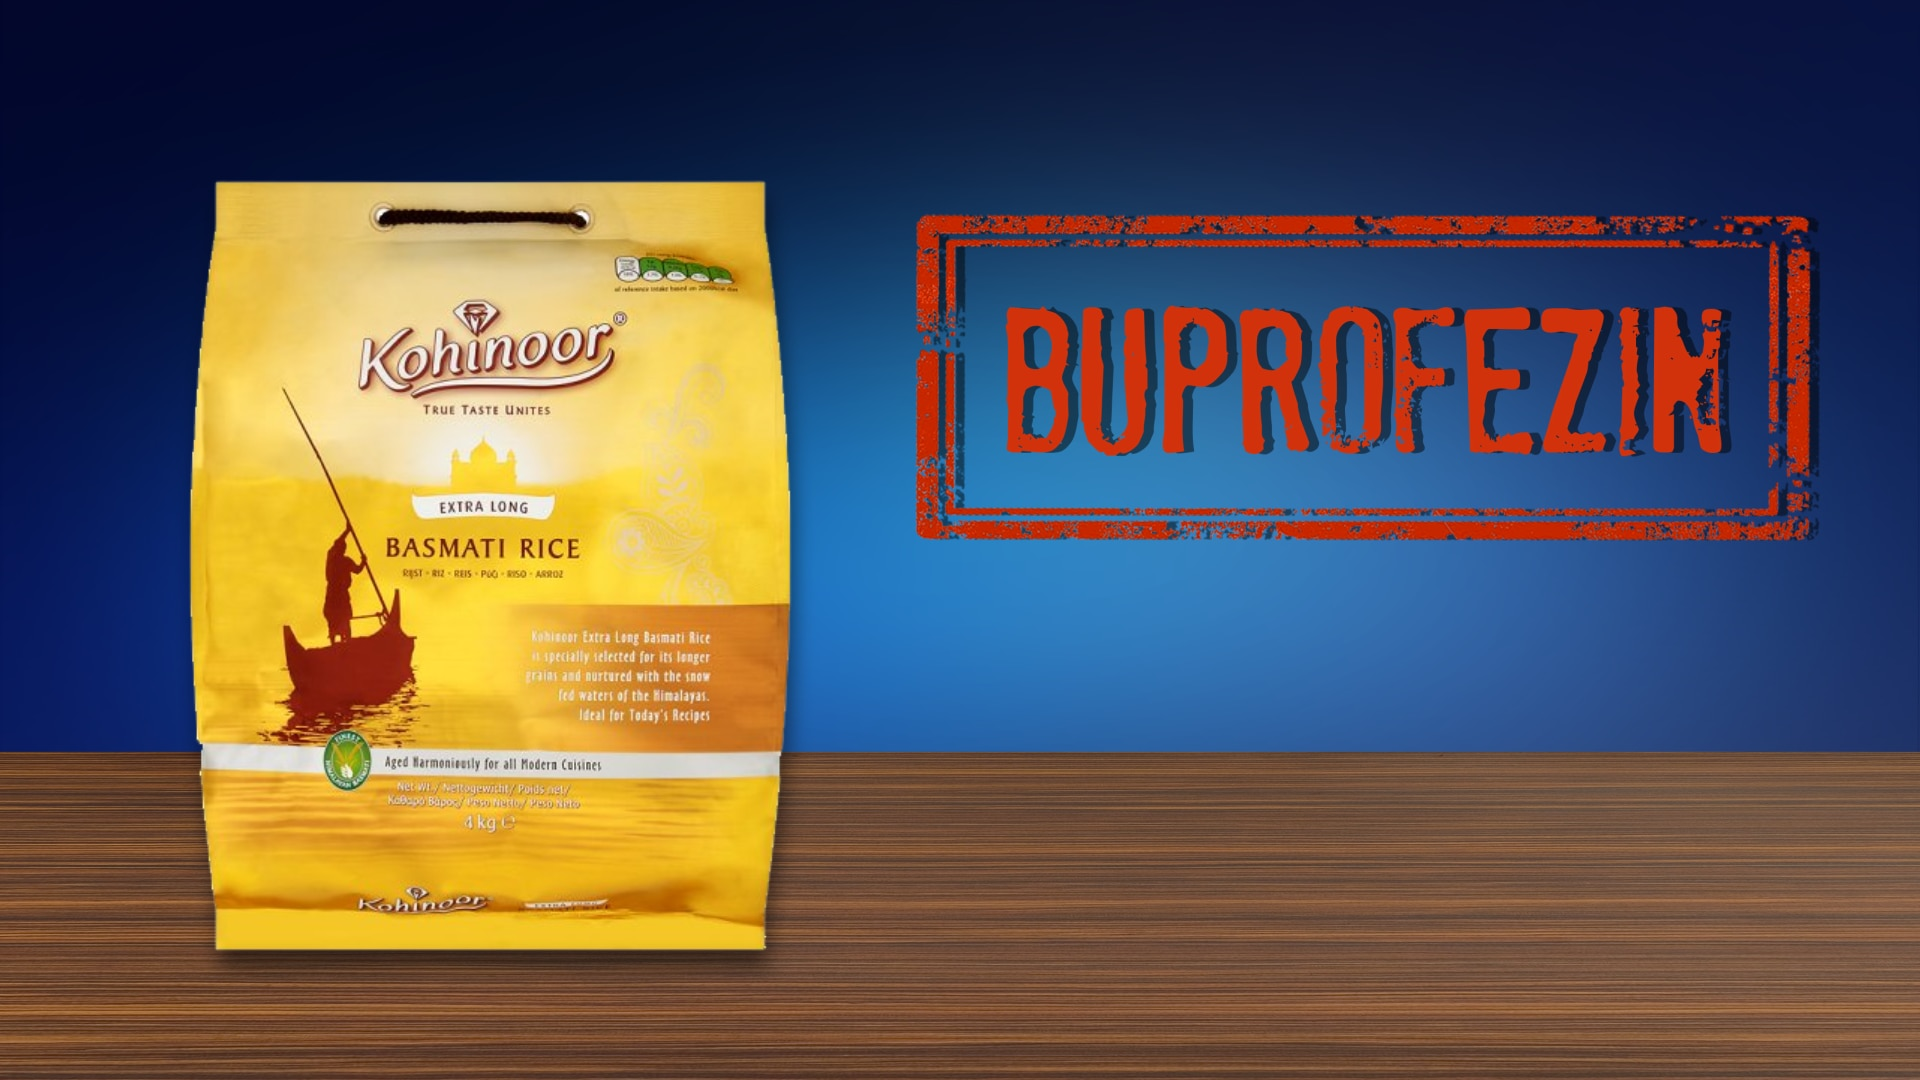 Kohinoor rice found to contain buprofezin